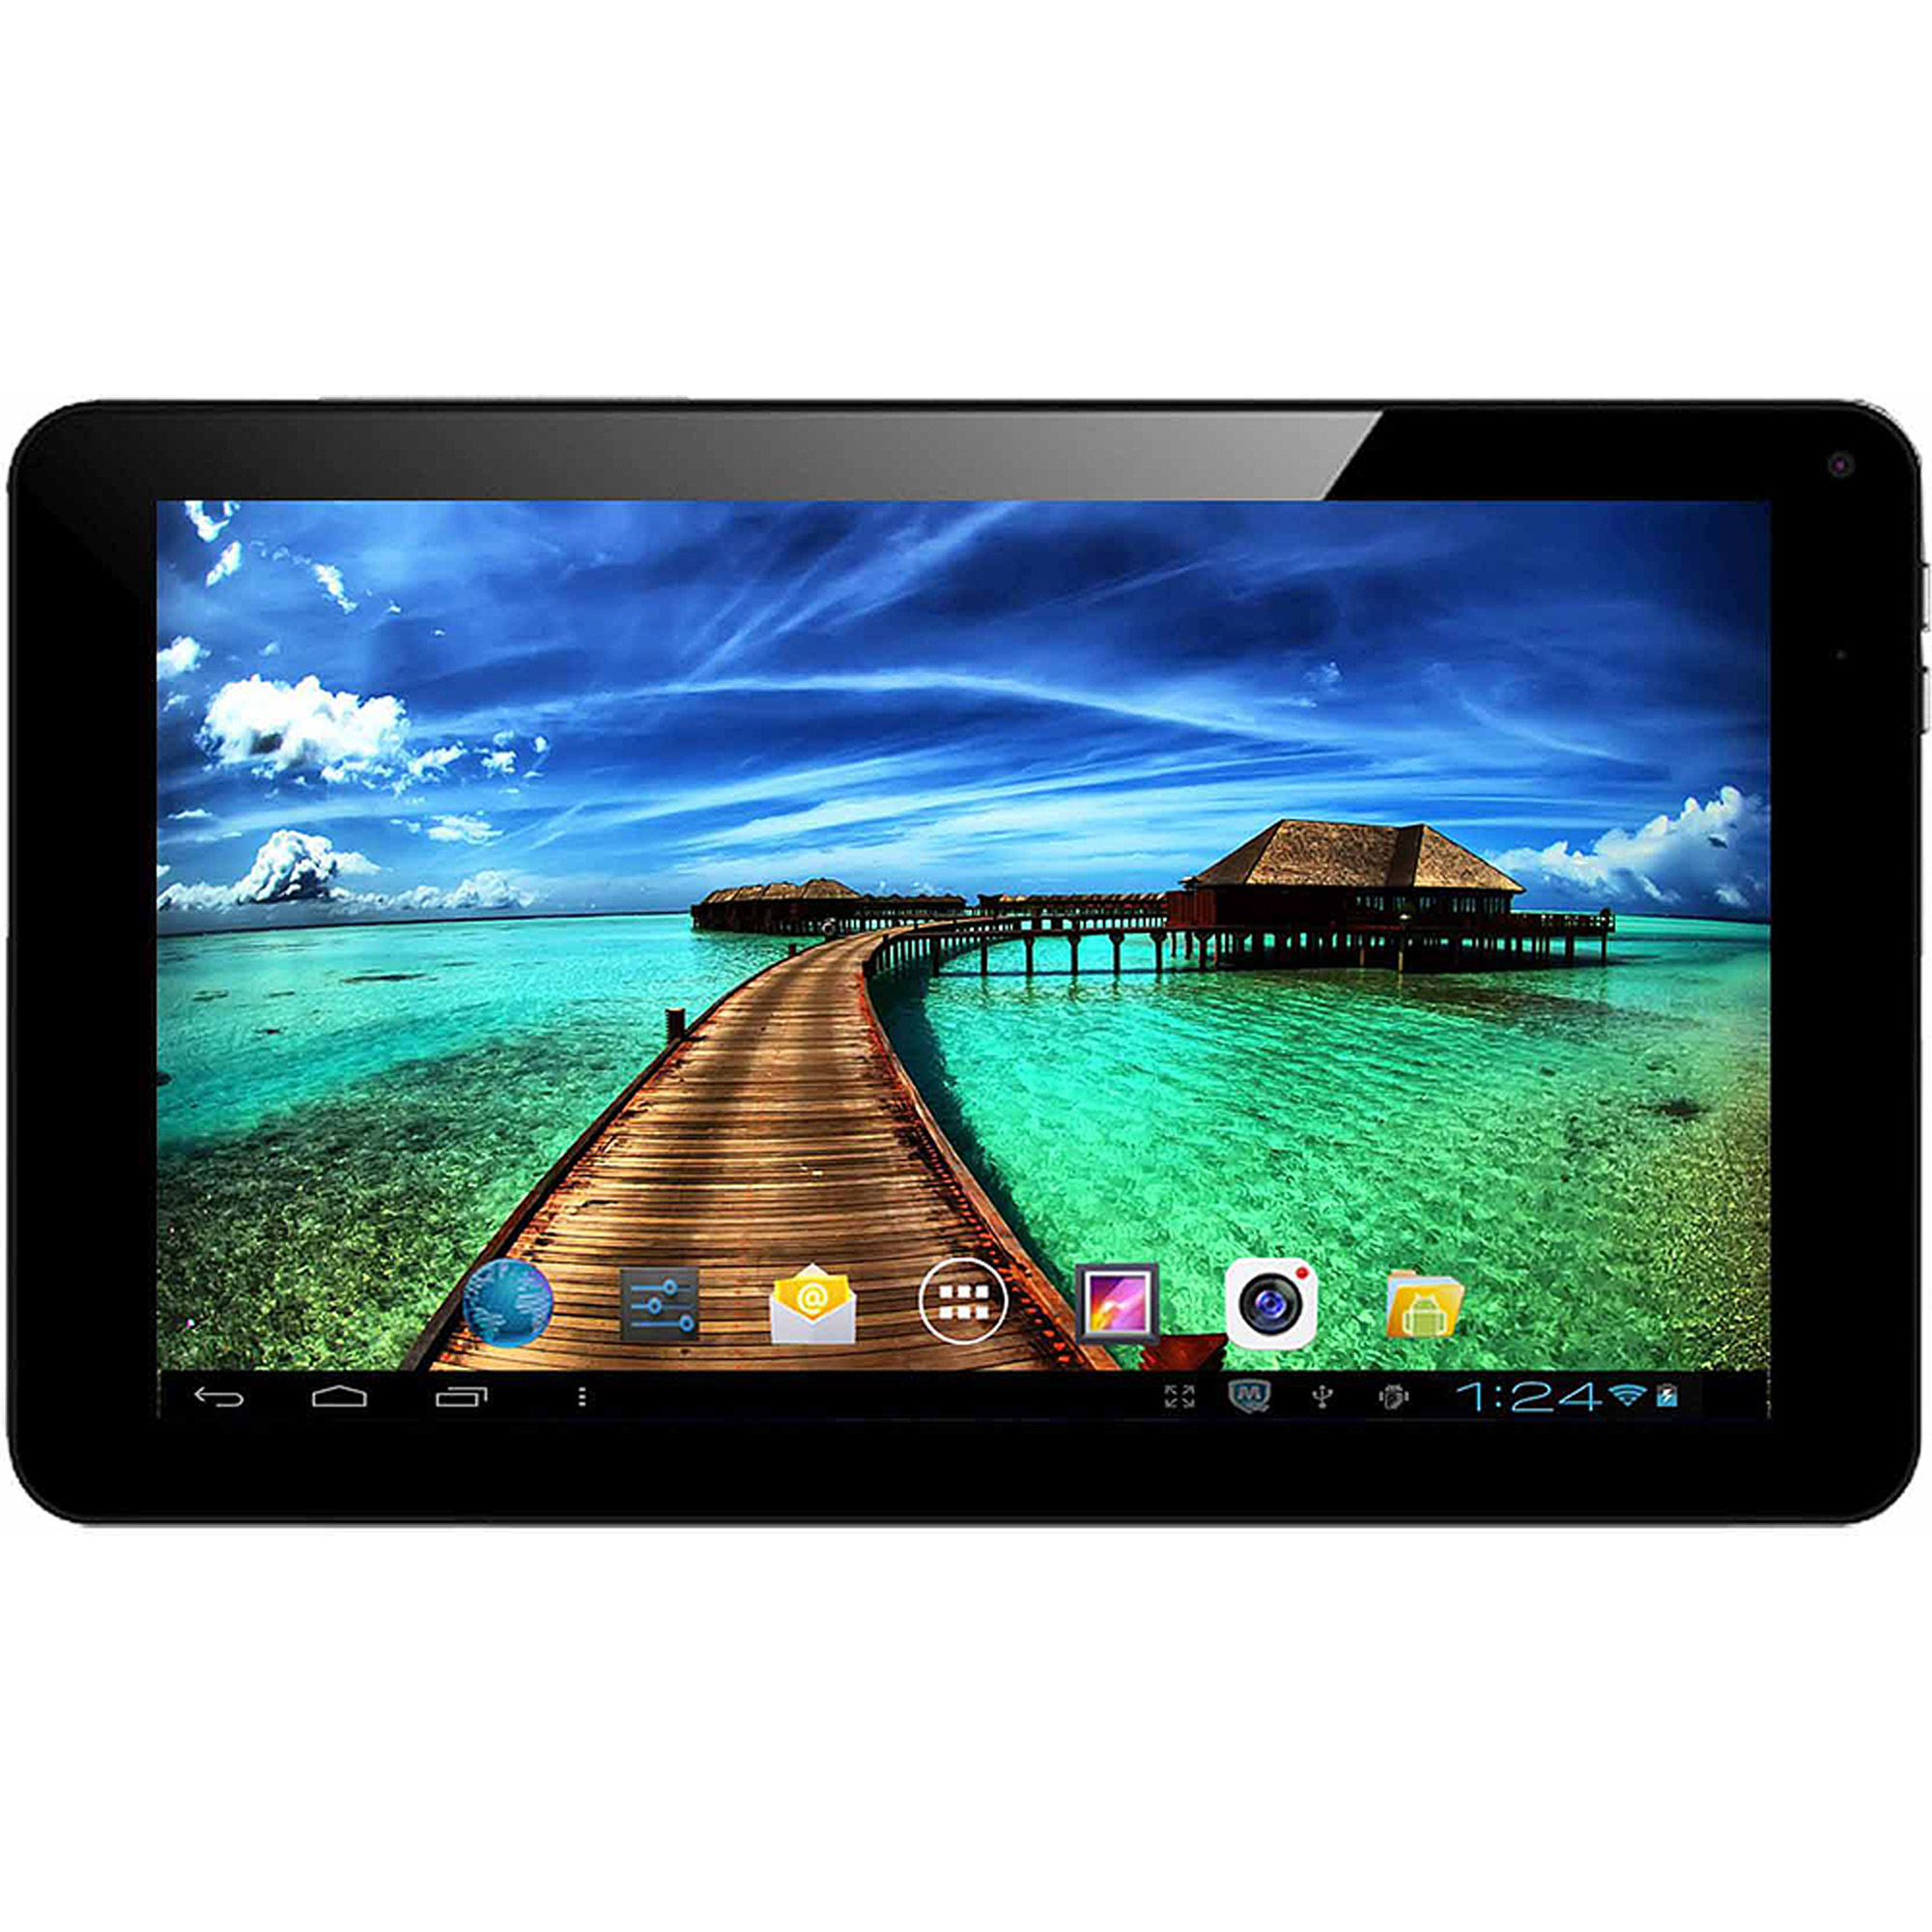 "SuperSonic SC-4009 with WiFi 9"" Touchscreen Tablet PC Featuring Android 4.4 (KitKat) Operating System"